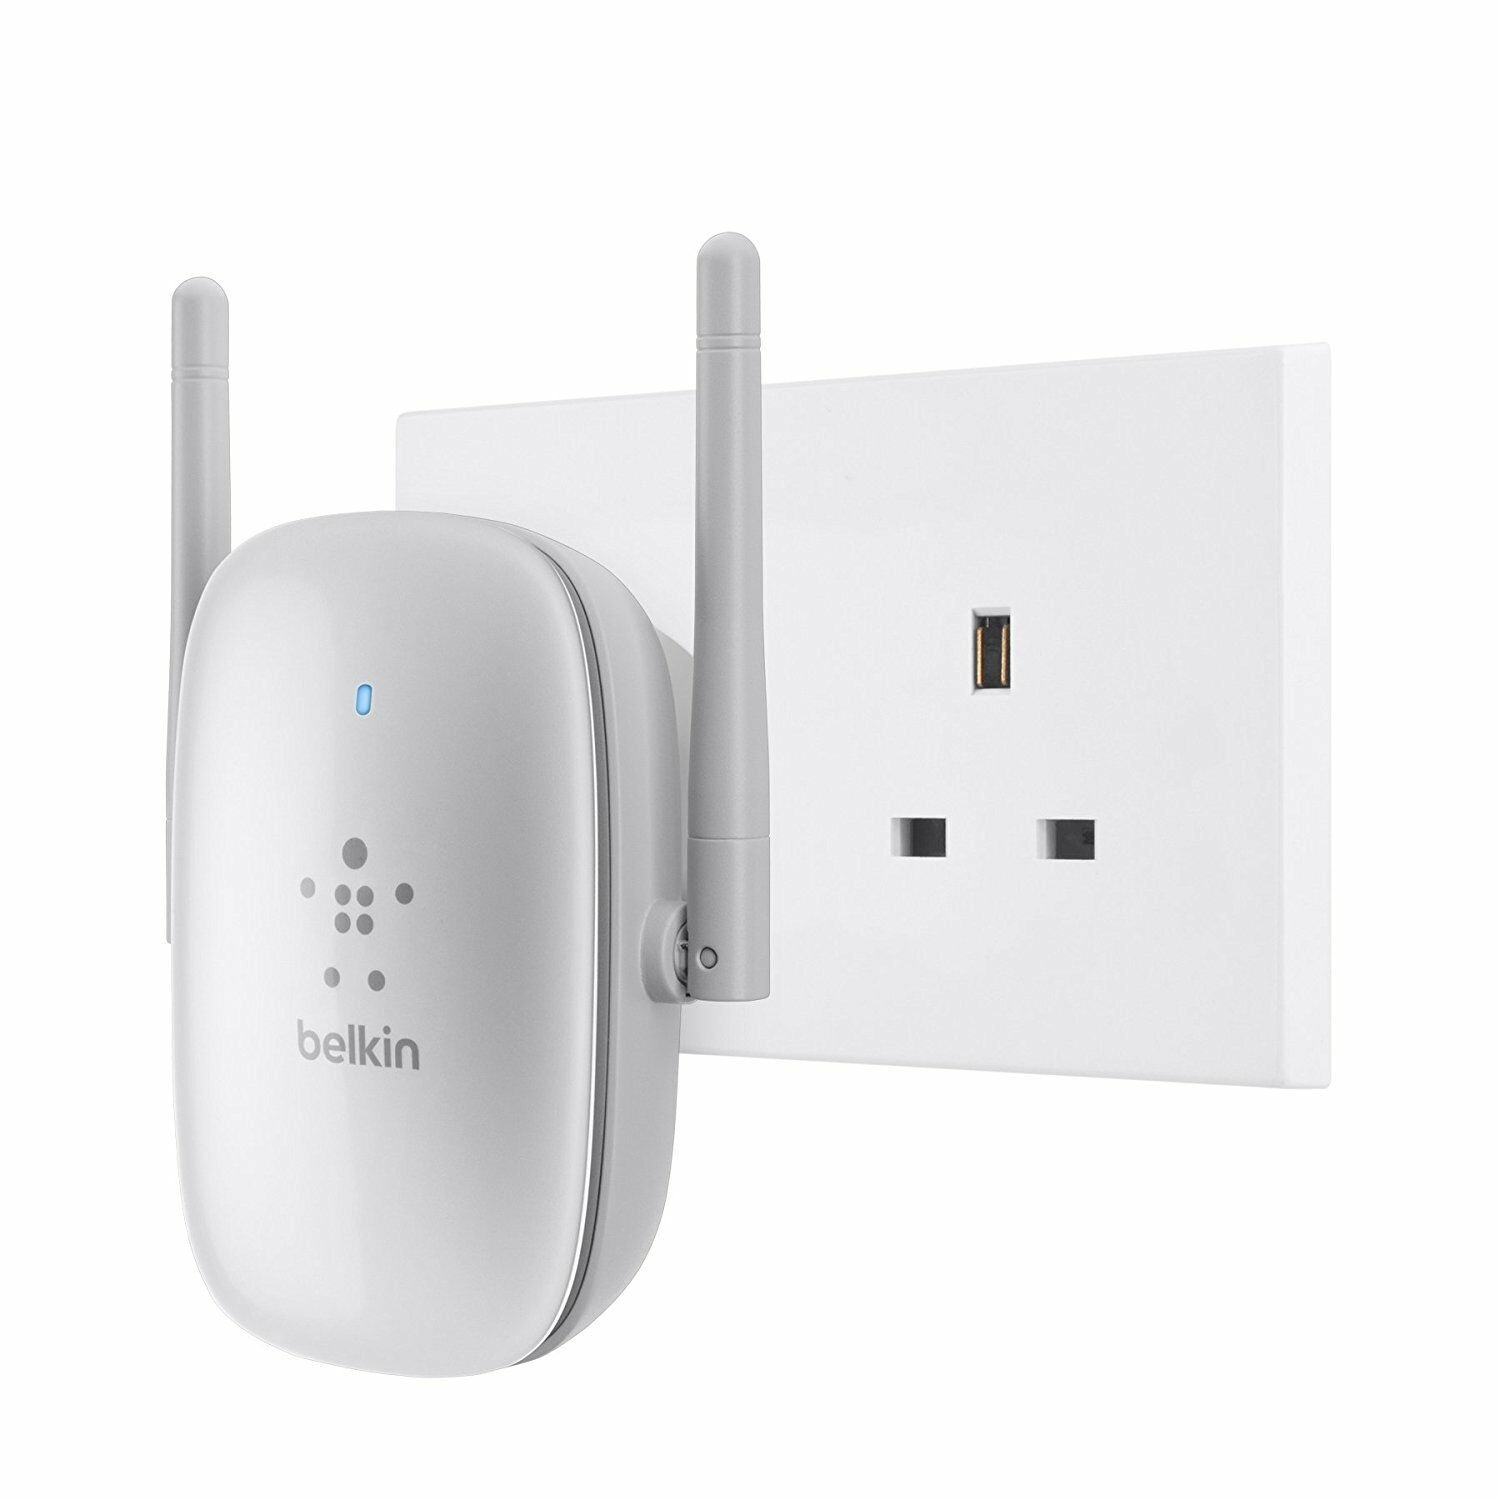 belkin n600 wifi range extender mac address